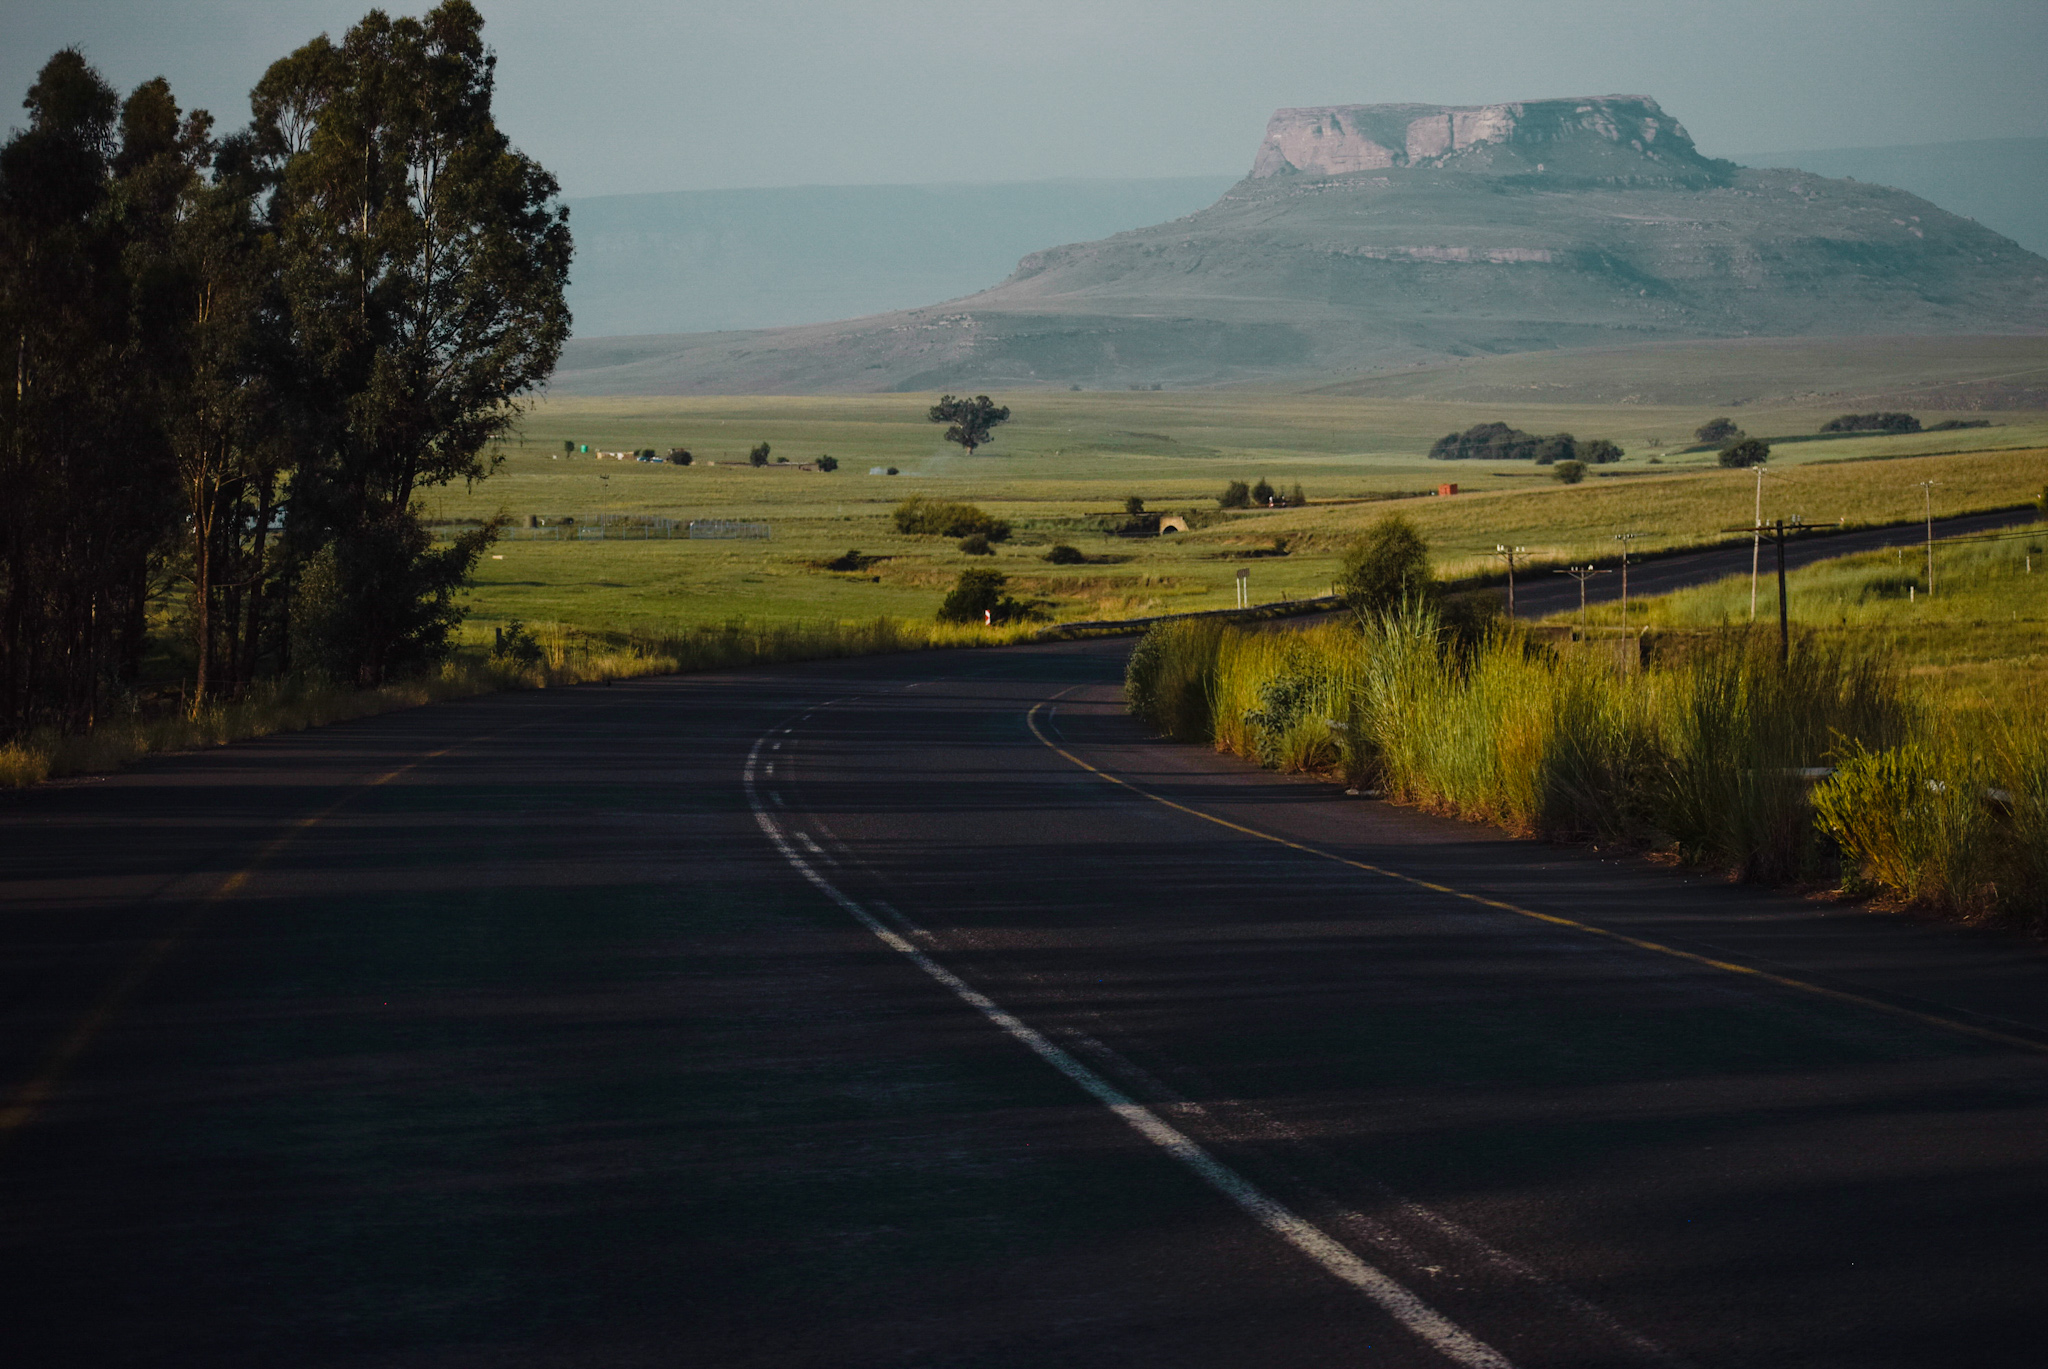 30 Travel Photos from South Africa to Inspire Your Next Trip| Advice to anyone planning a trip to South Africa via a photo inspiration of places to visit beyond Johannesburg and Cape Town